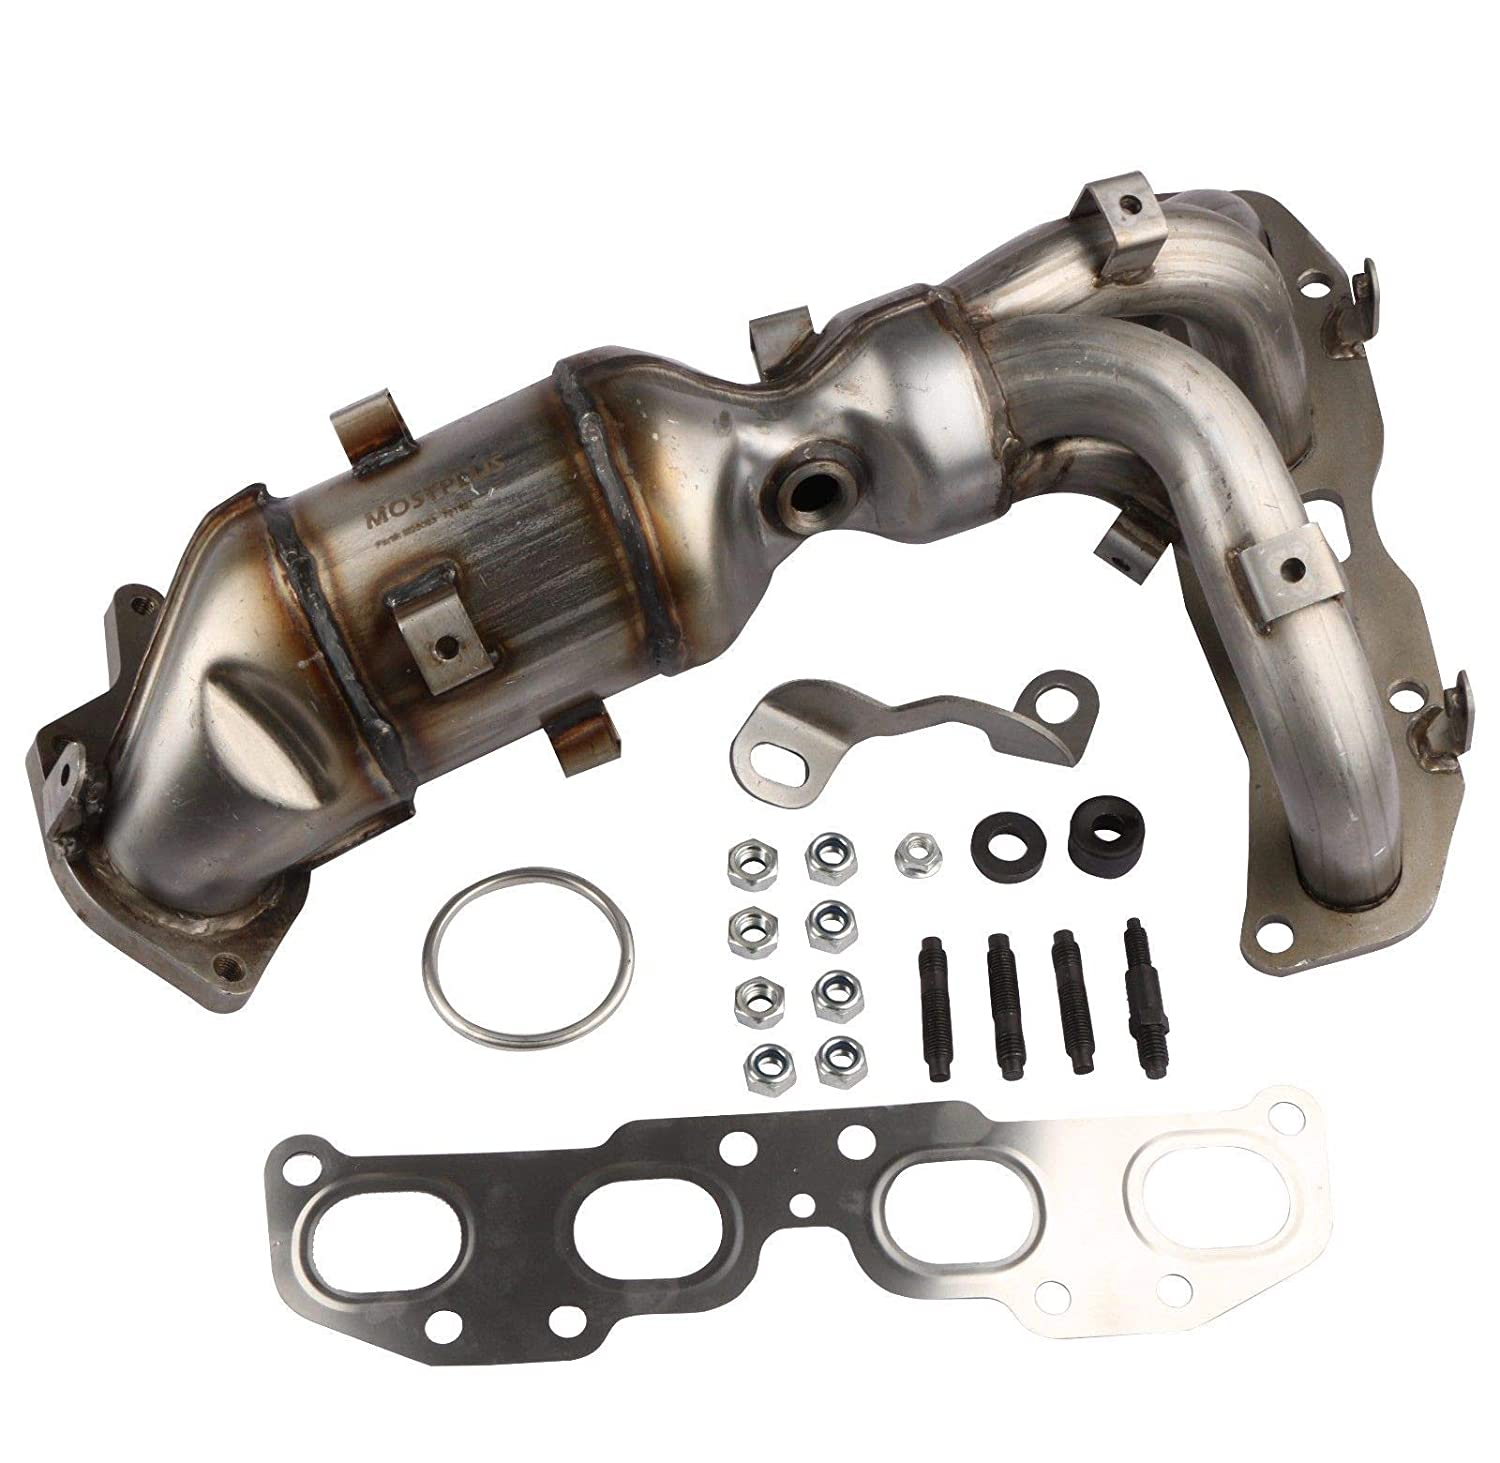 MOSTPLUS Manifold Catalytic Converter w/Gasket Kit For Nissan Altima 2 5L  2007 2008 2009 2010 2011 2012 2013 674-933